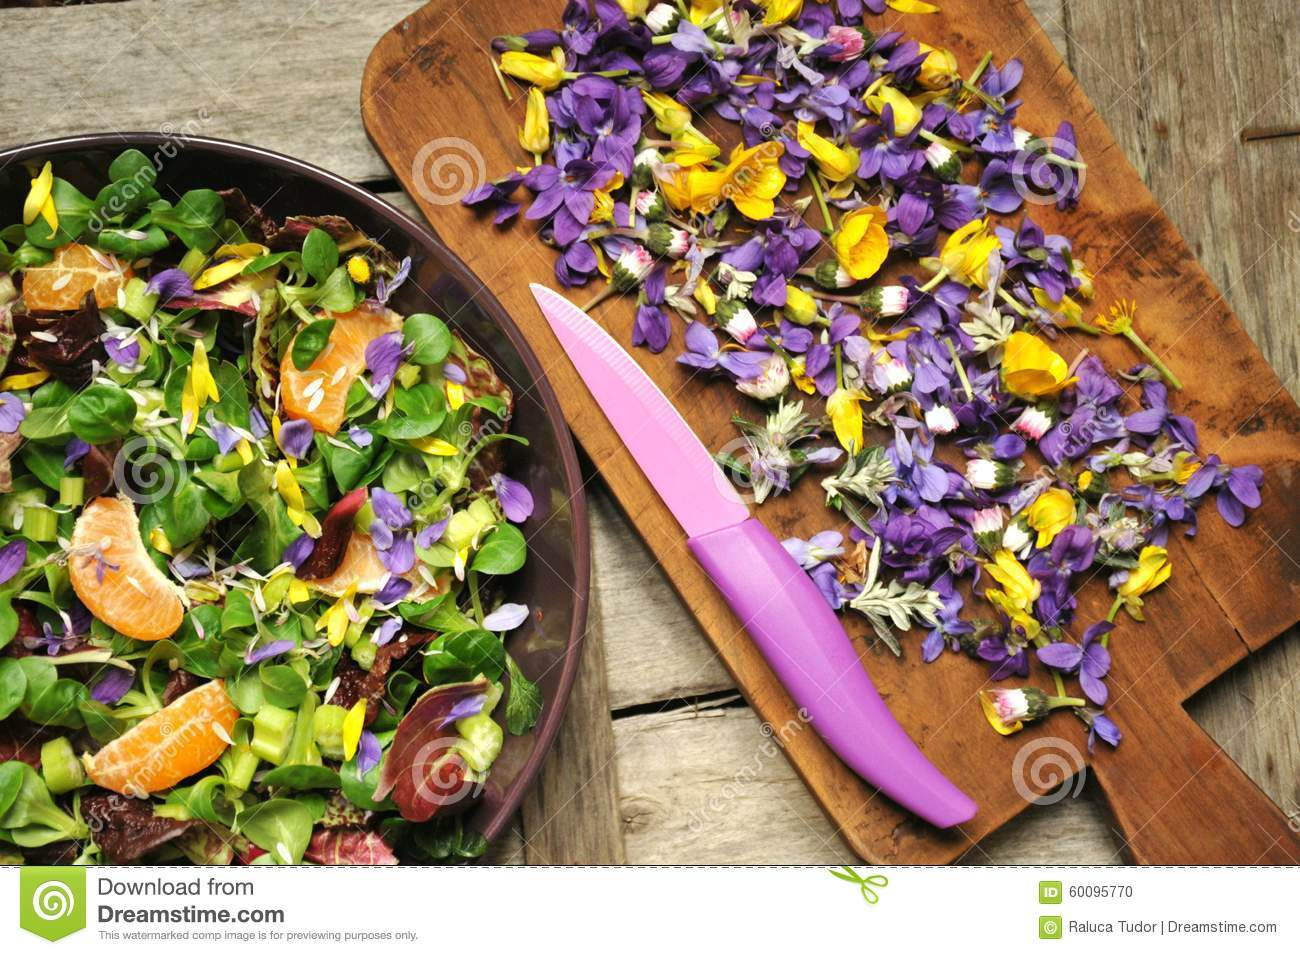 Alkaline, healthy food: salad with flowers, fruit and valerian salad